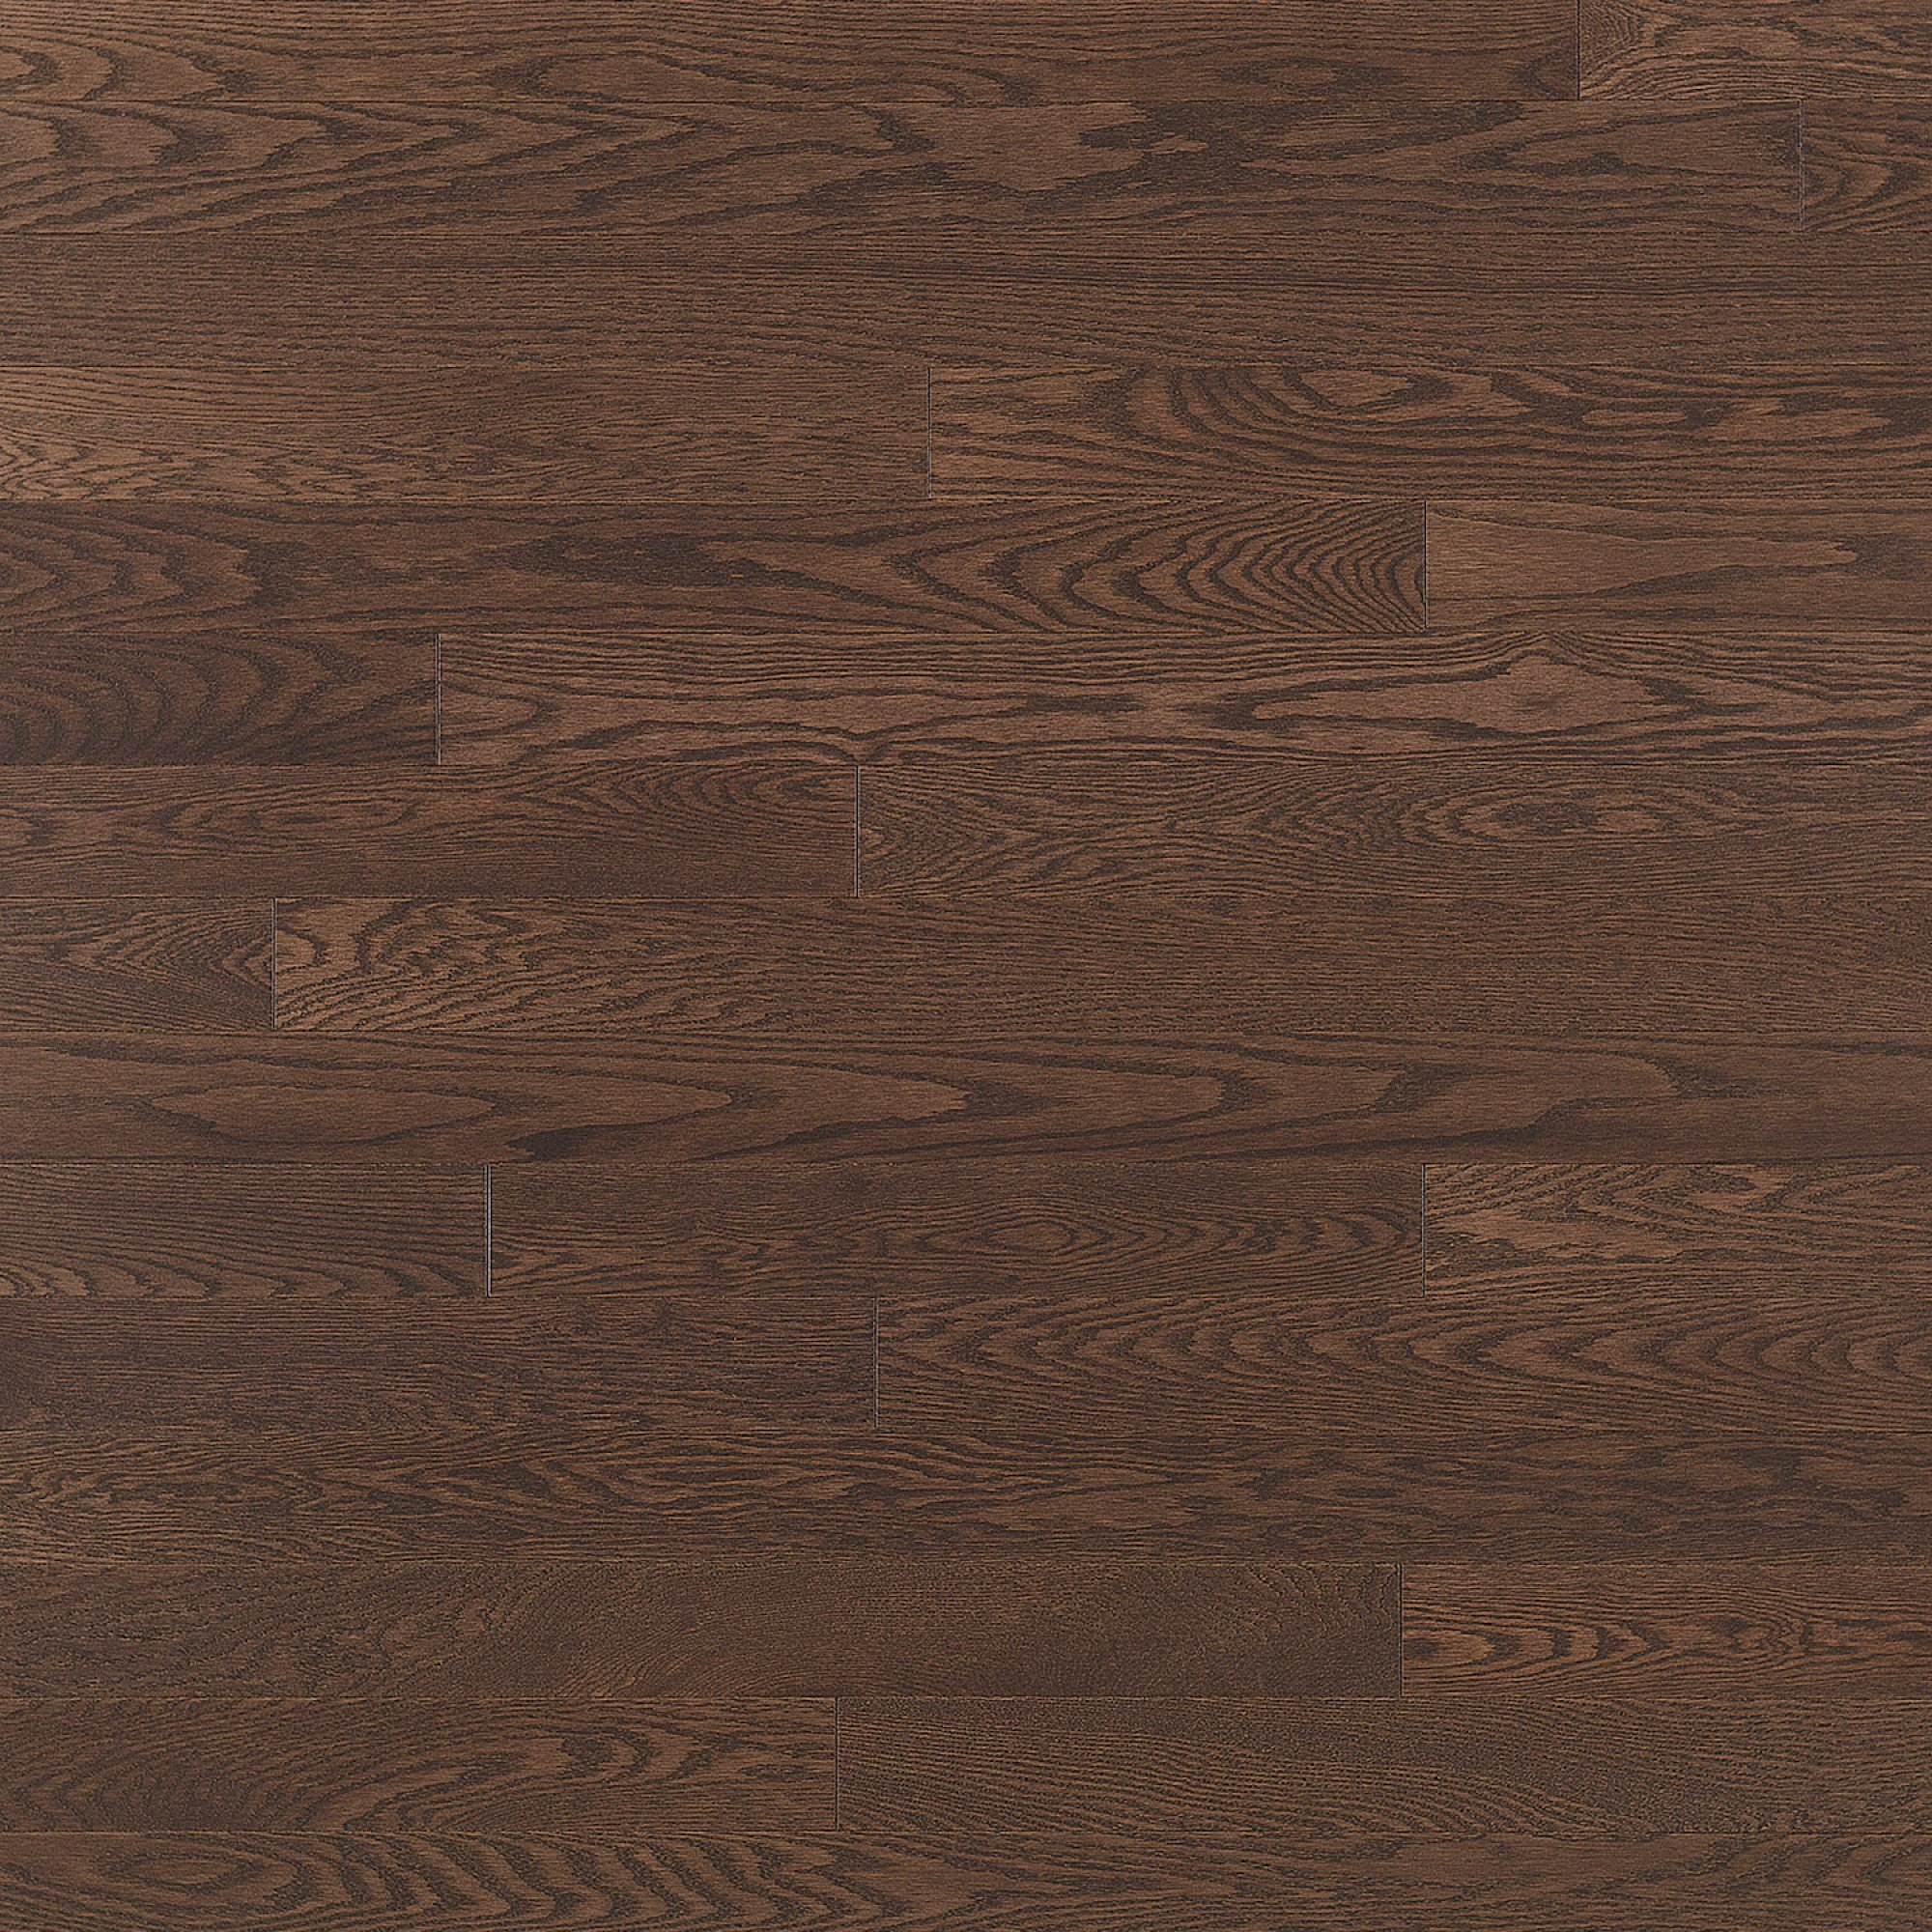 Alive Red Oak Knowlton Mirage Hardwood Floors